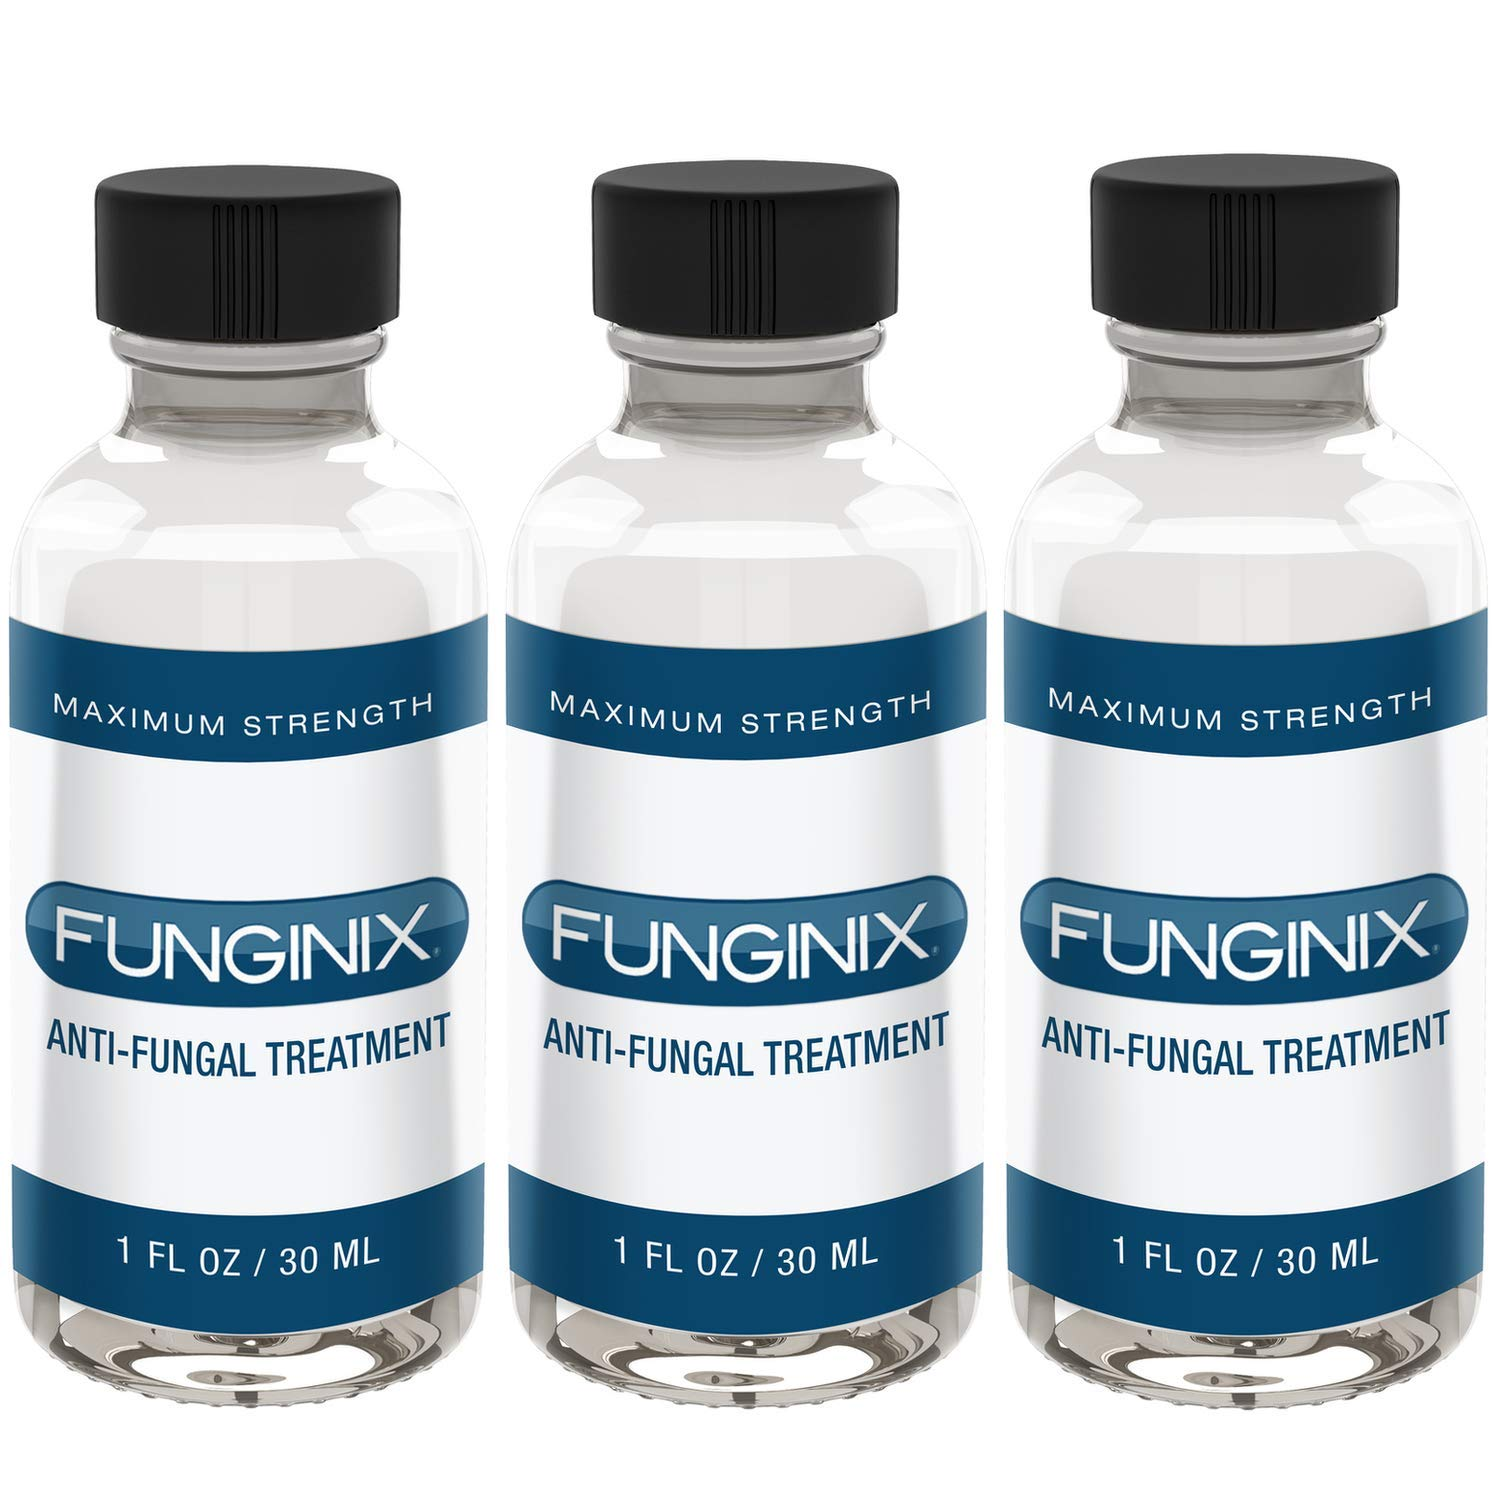 FUNGINIX Finger and Toe Fungus Treatment - Maximum Strength Anti-Fungal Solution, Eliminate Fungal Infections, Powerful & Effective (3 Bottles) by FUNGINIX